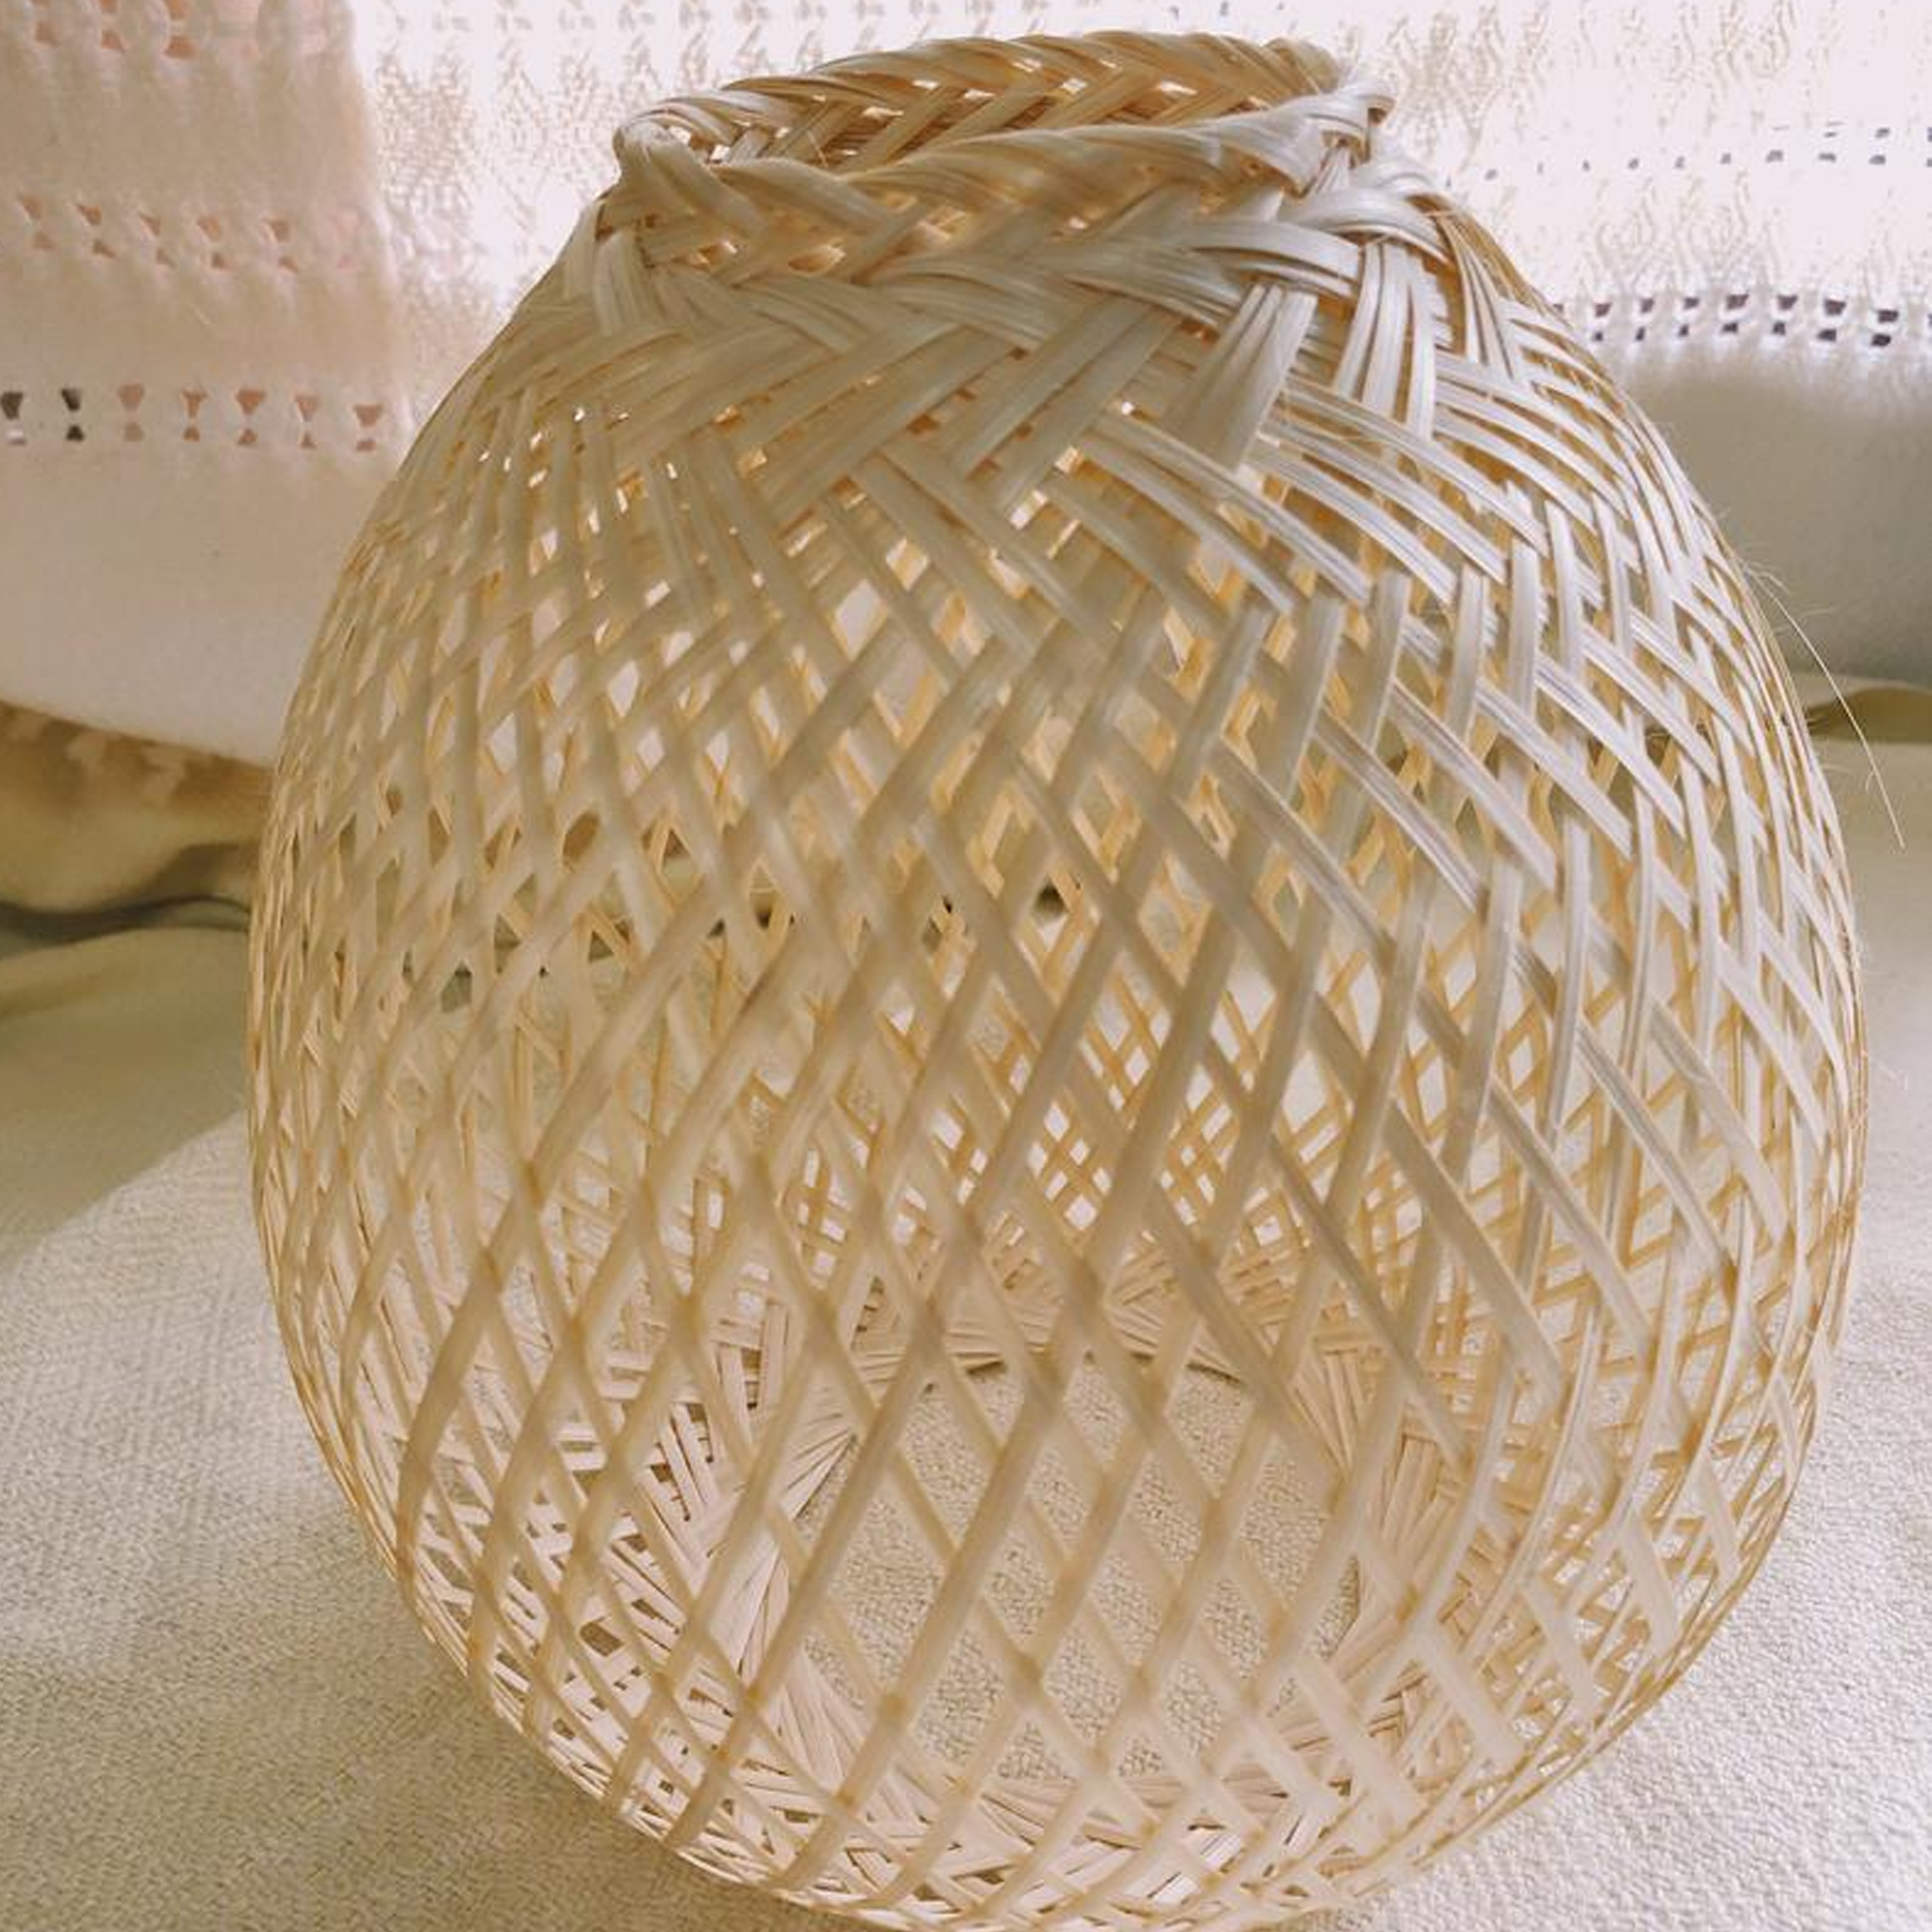 Copy of Woven Bamboo Lampshade